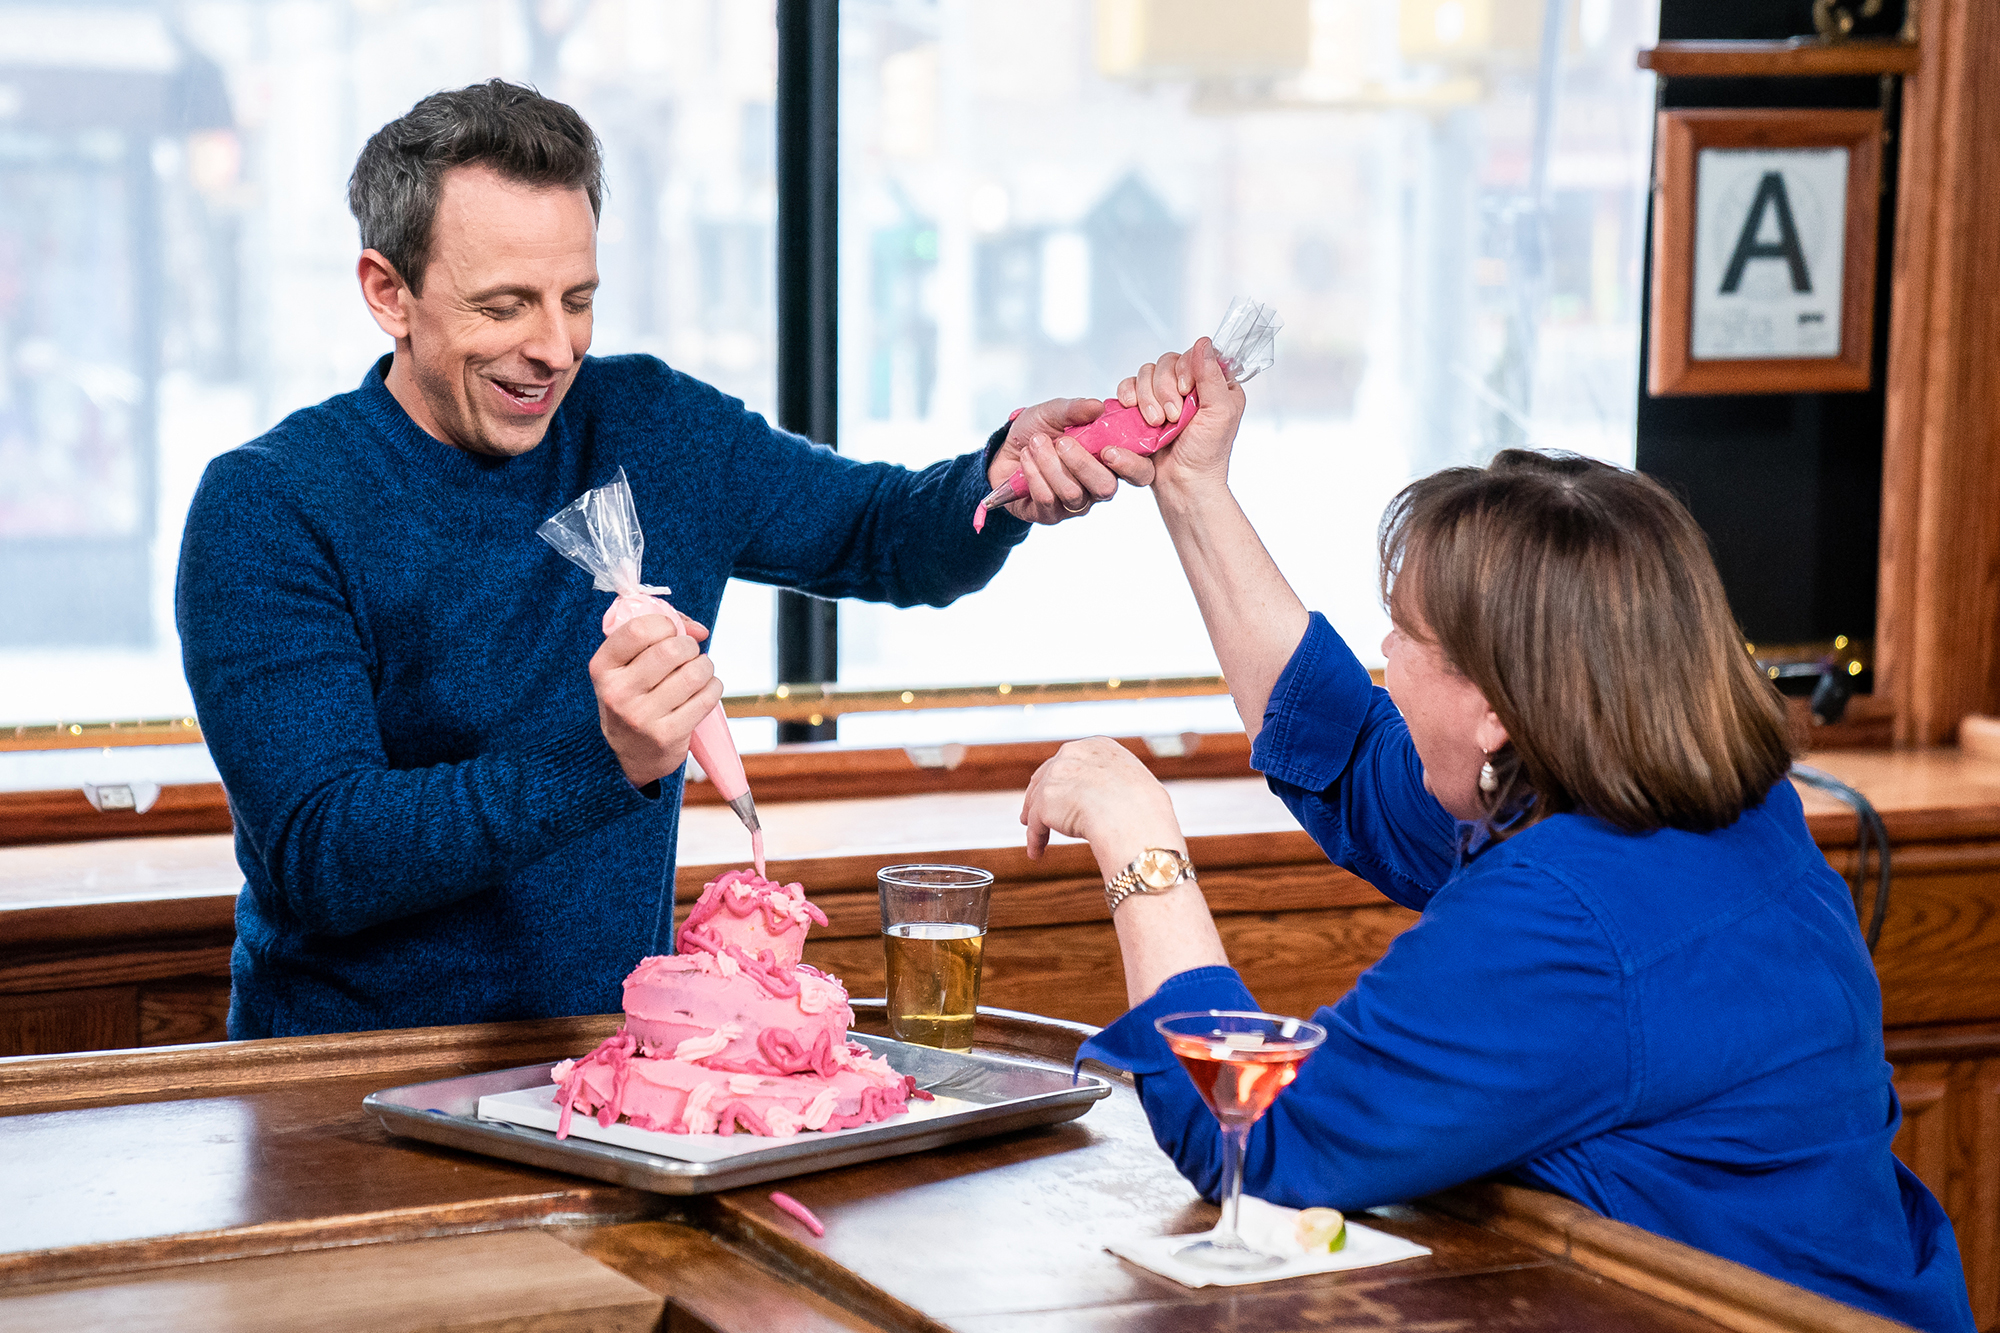 "Seth Meyers Went Day Drinking With Ina Garten and Drunkenly Made Her a Cake: 'I Prepared Something Special' - Seth Meyers and Ina Garten during ""Seth Goes Day Drinking with Ina Garten"" on February 6, 2019."